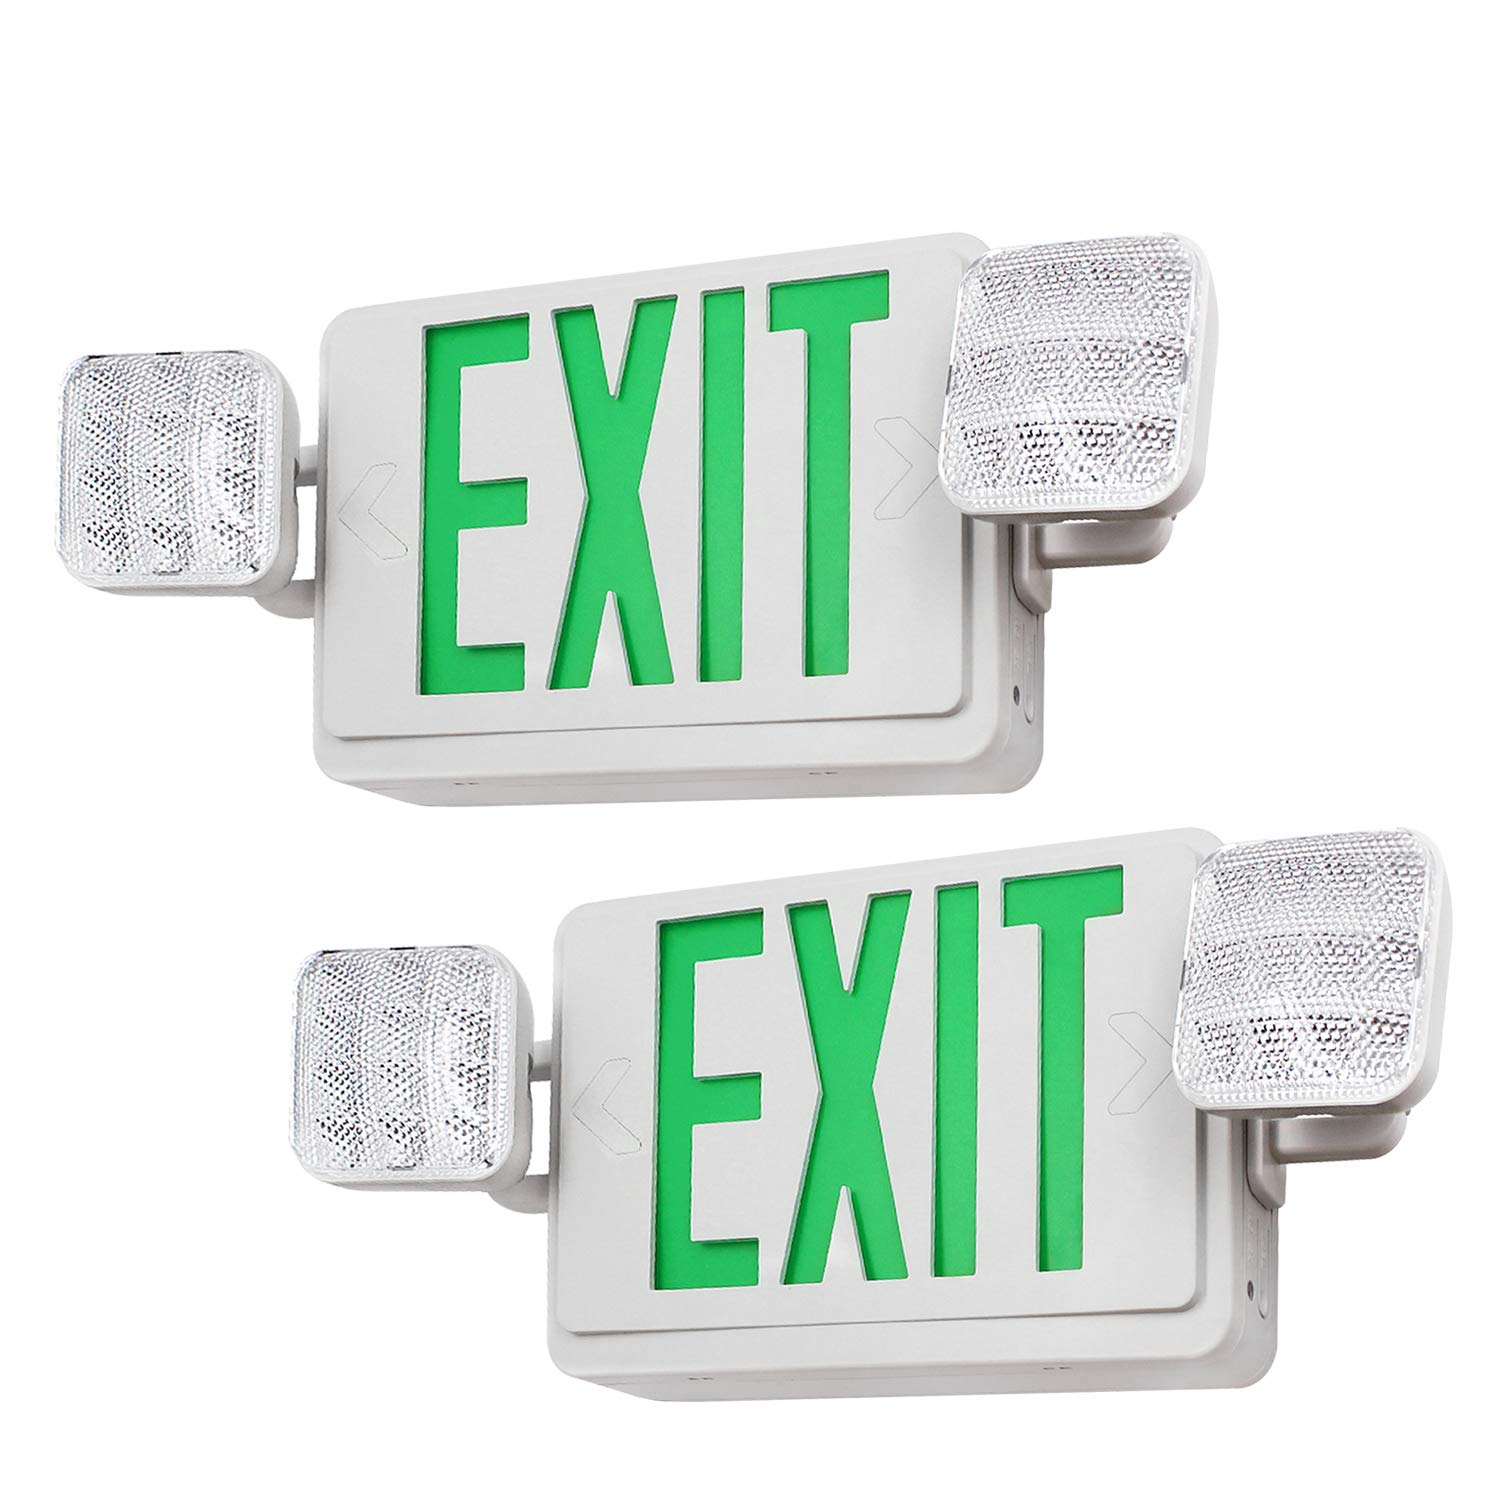 Green LED Emergency Exit Light with Battery Backup, UL-Listed Exit Sign Light, AC 120V/277V, Dual Square Heads Lights for Hallways/Corridors/Stairways, Pack of 2